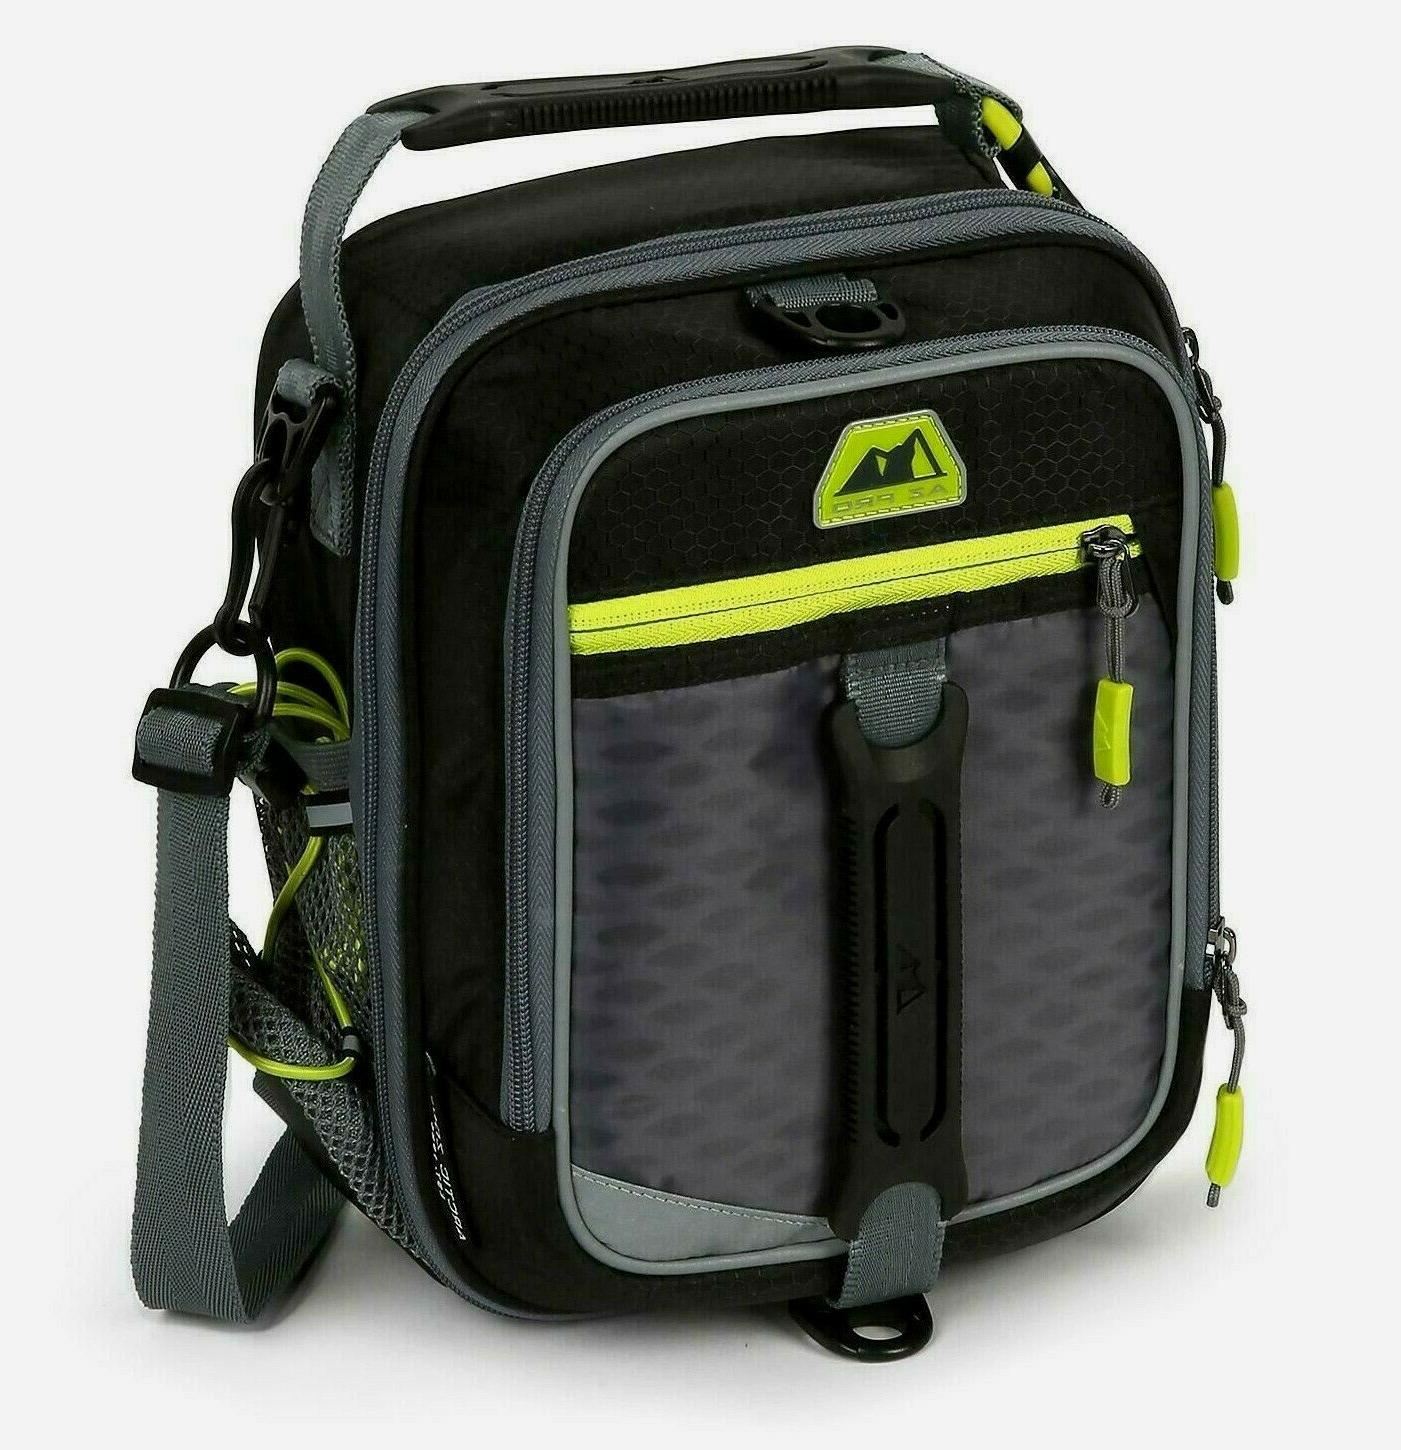 8 Piece High-Performance Dual-Compartment Lunch